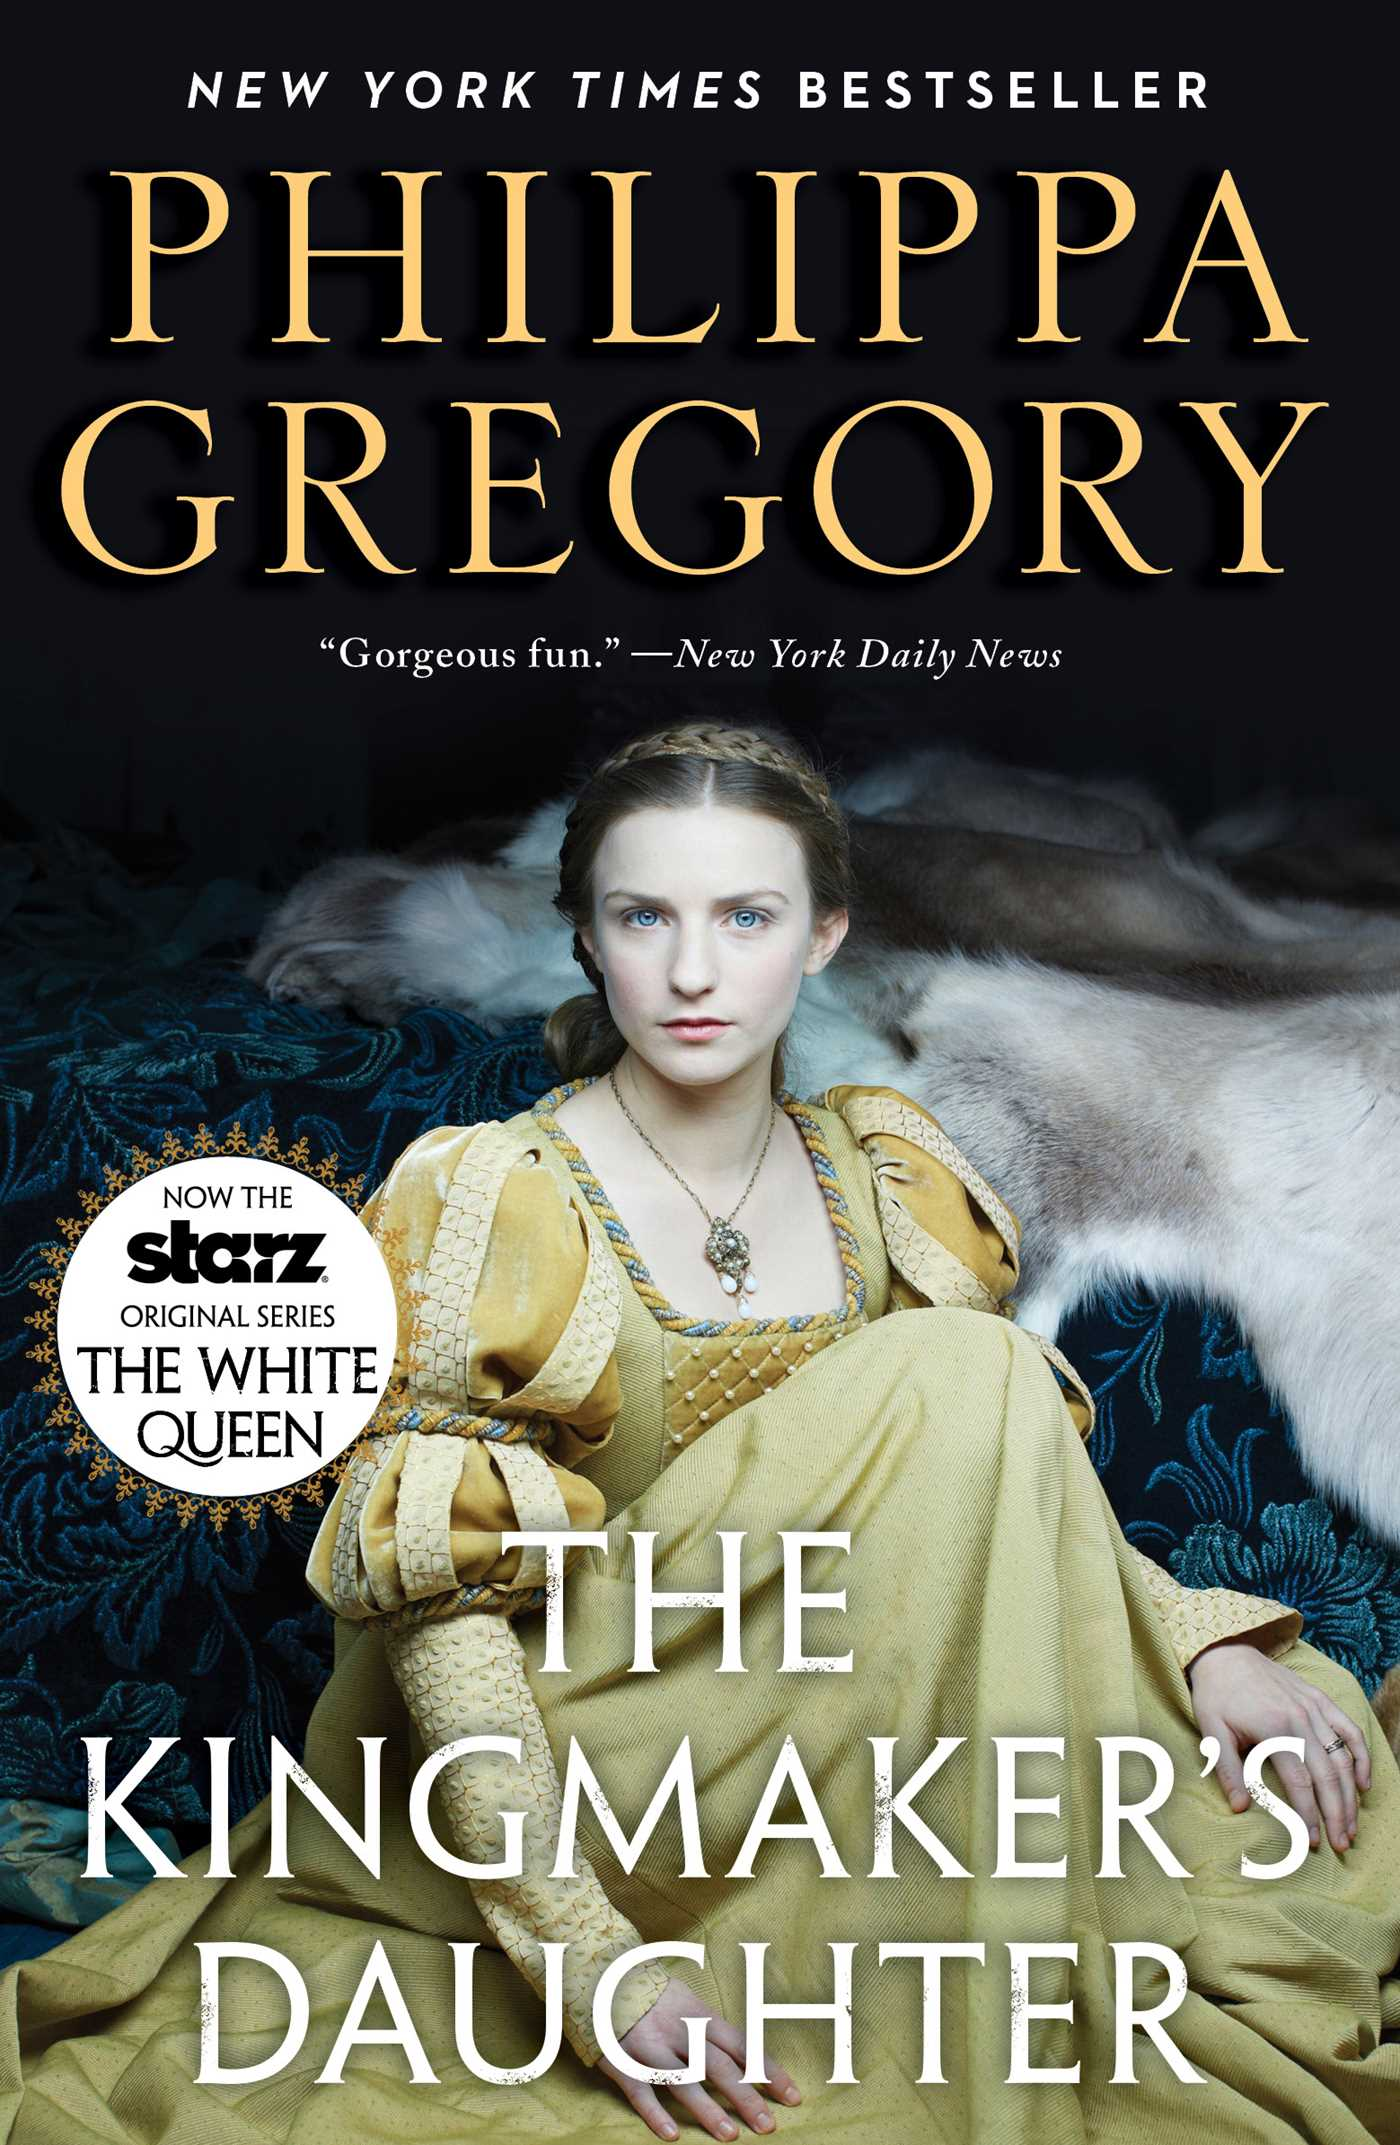 Kingmakers-daughter-9781451626148_hr